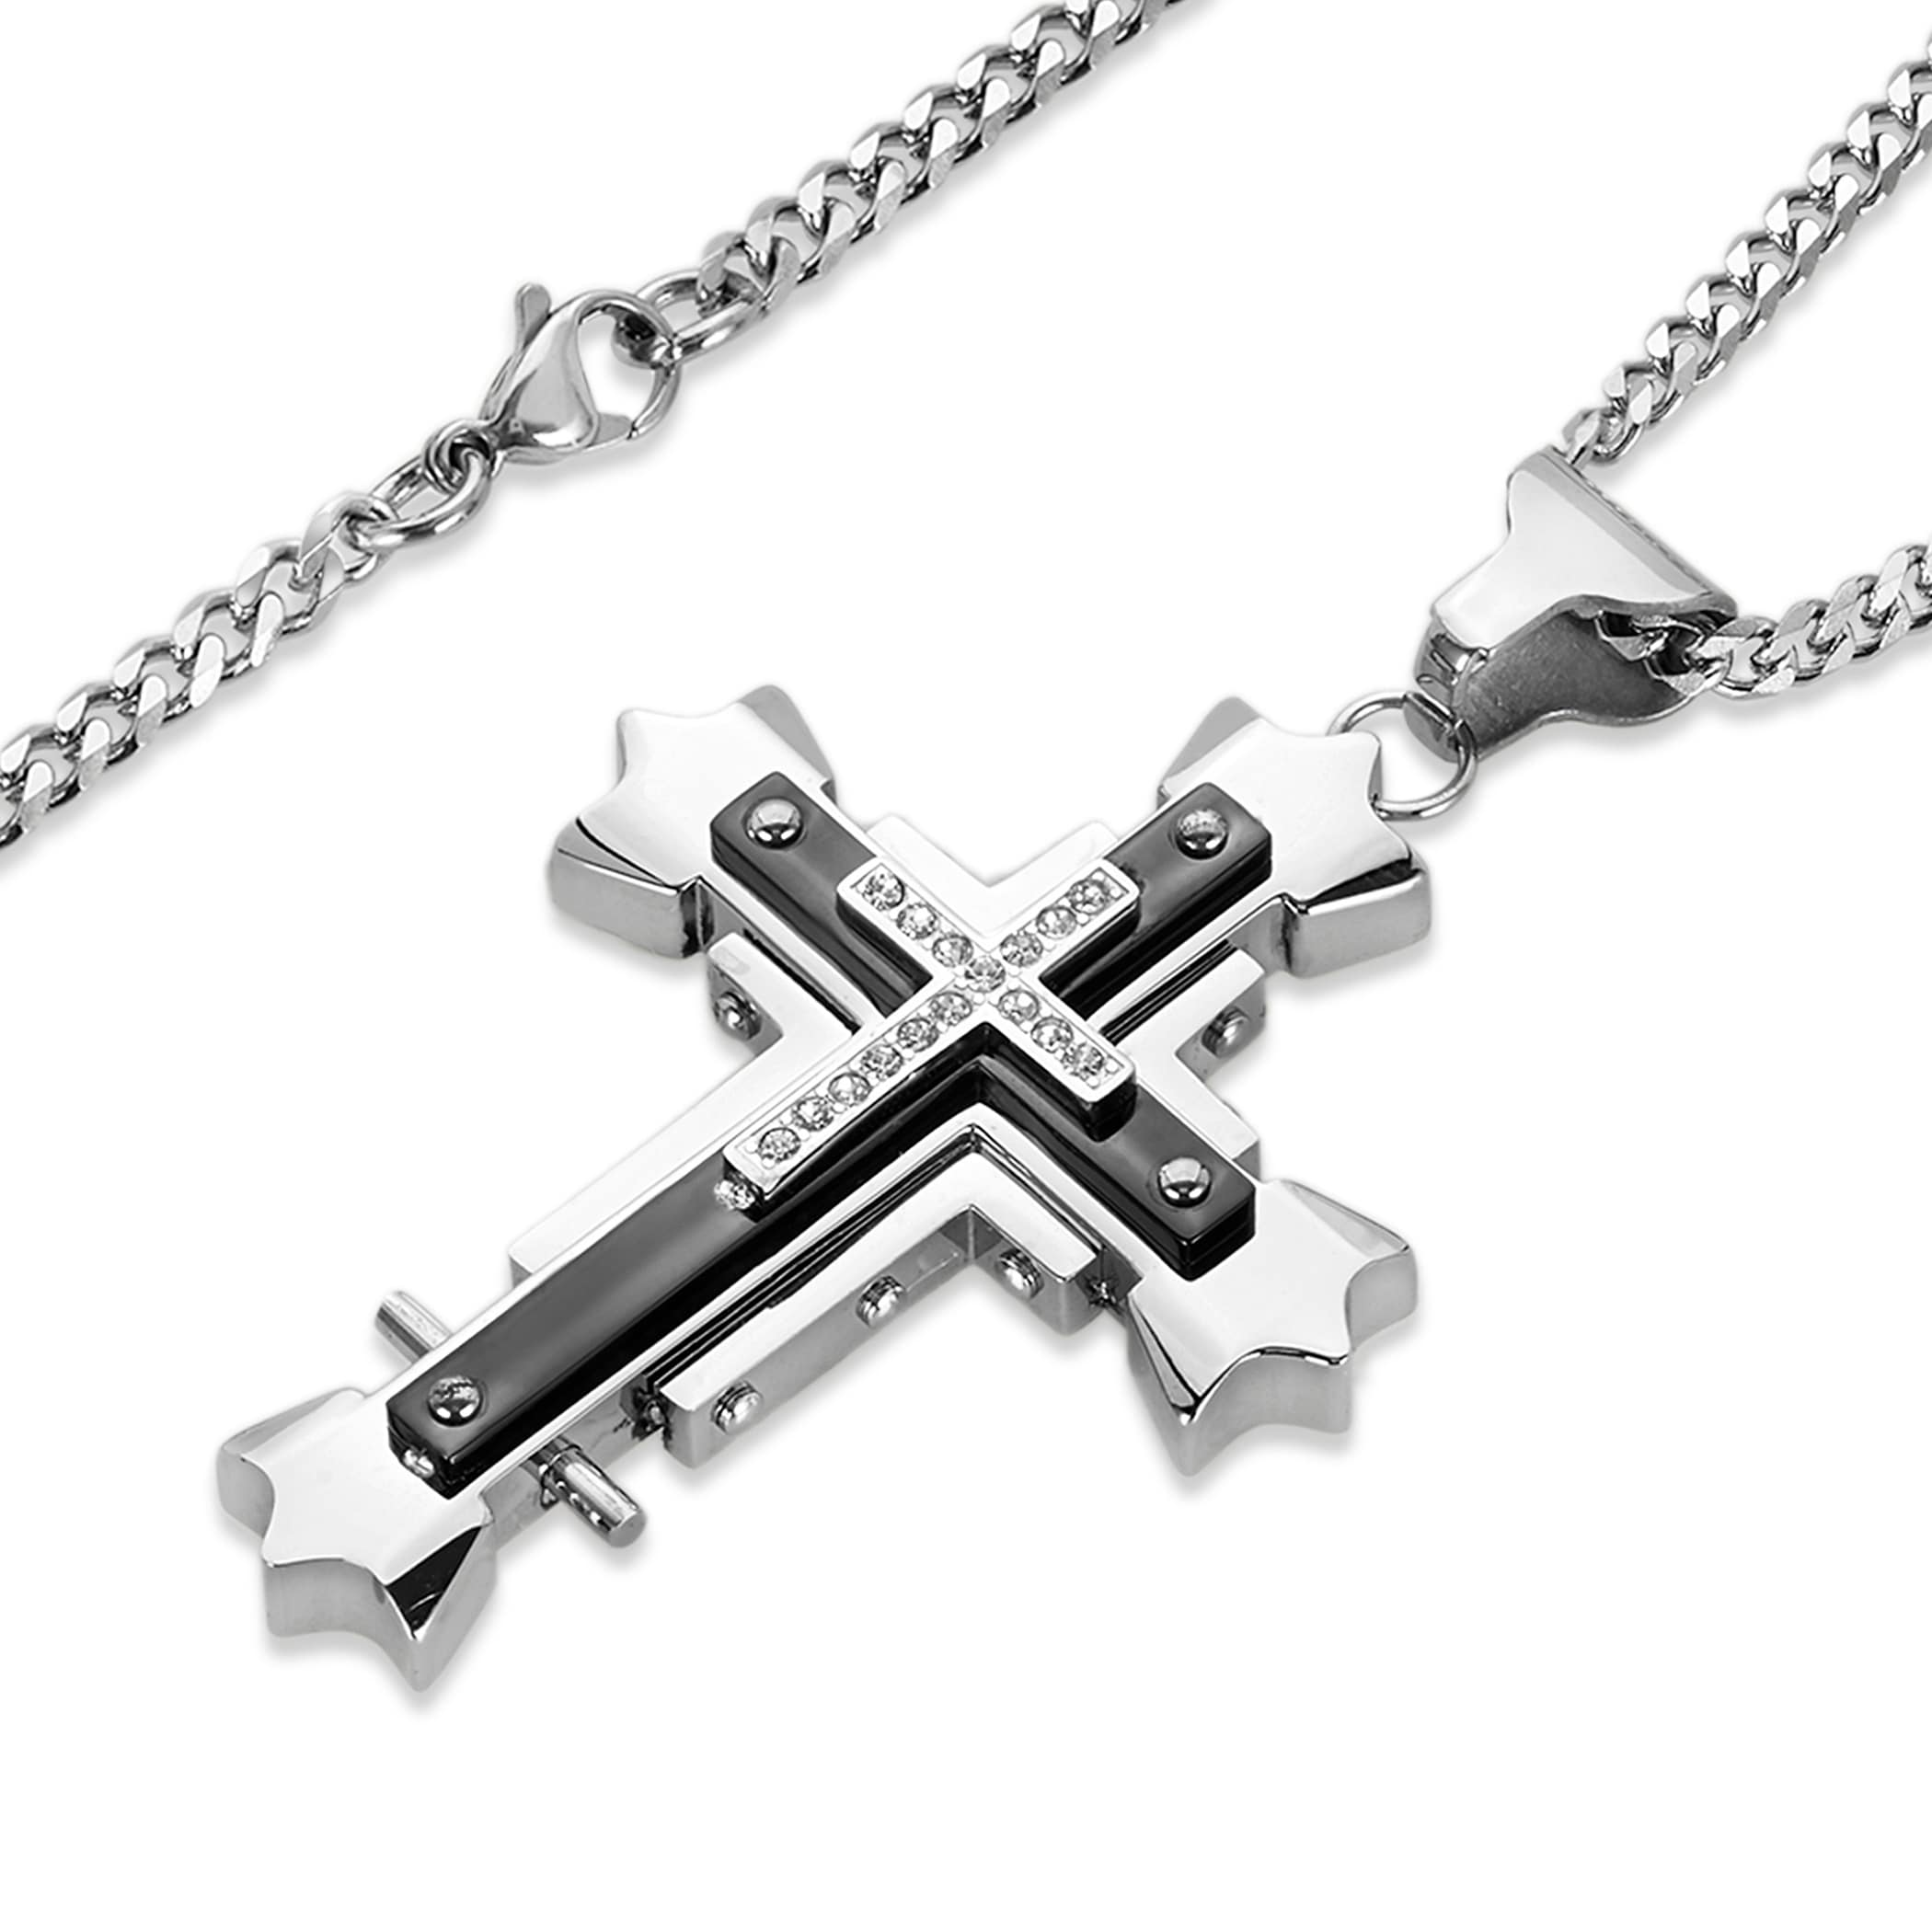 Shop mens cubic zirconia high polish stainless steel cross necklace shop mens cubic zirconia high polish stainless steel cross necklace blackwhite on sale free shipping on orders over 45 overstock 7110715 aloadofball